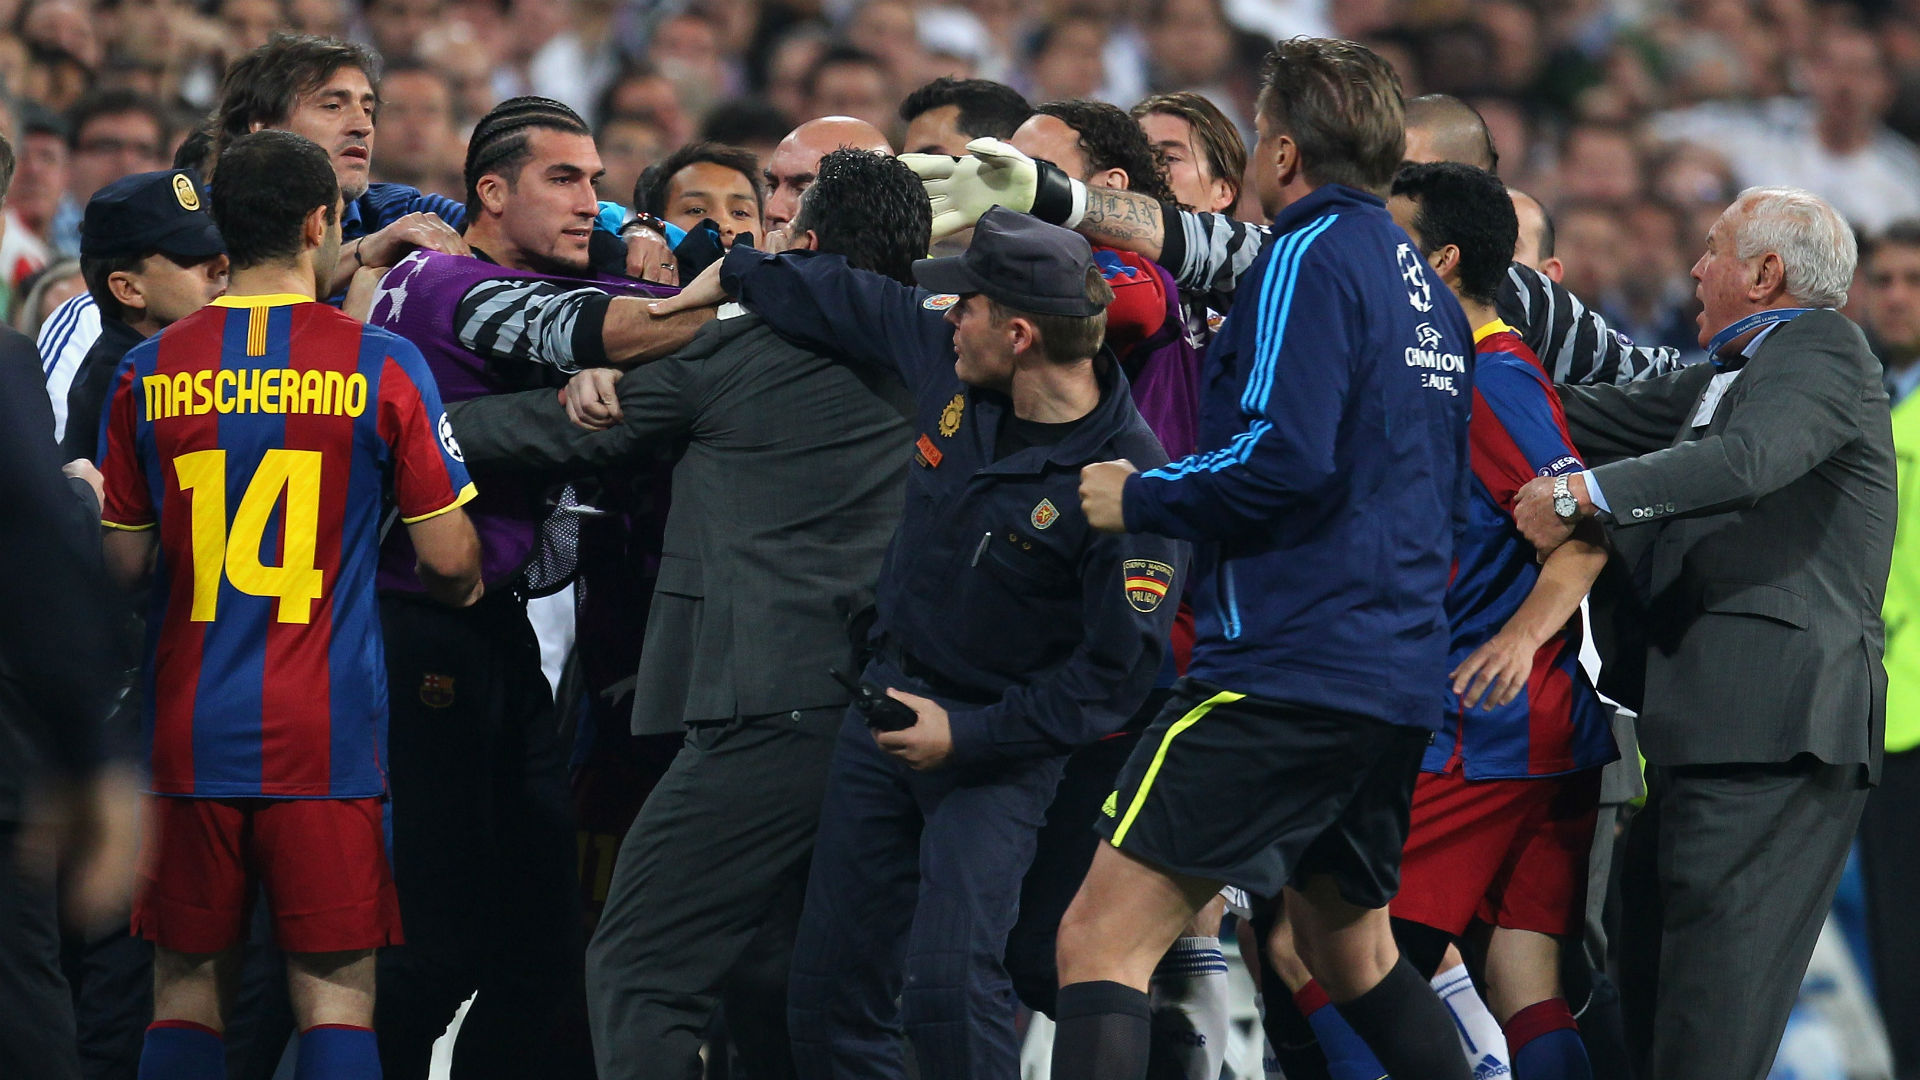 'Scandal at the Bernabeu', majestic Messi and 'Mourinho's the f****** chief' – Remembering 2011's Clasico mayhem